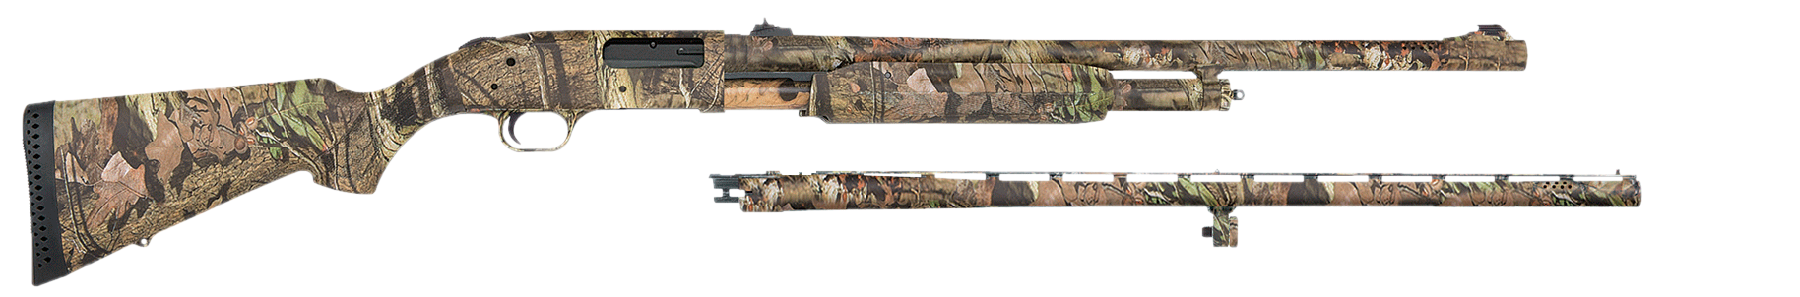 Mossberg 52272 500 Combo Shotguns Pump  12 Mossy Oak Break-Up Infinity